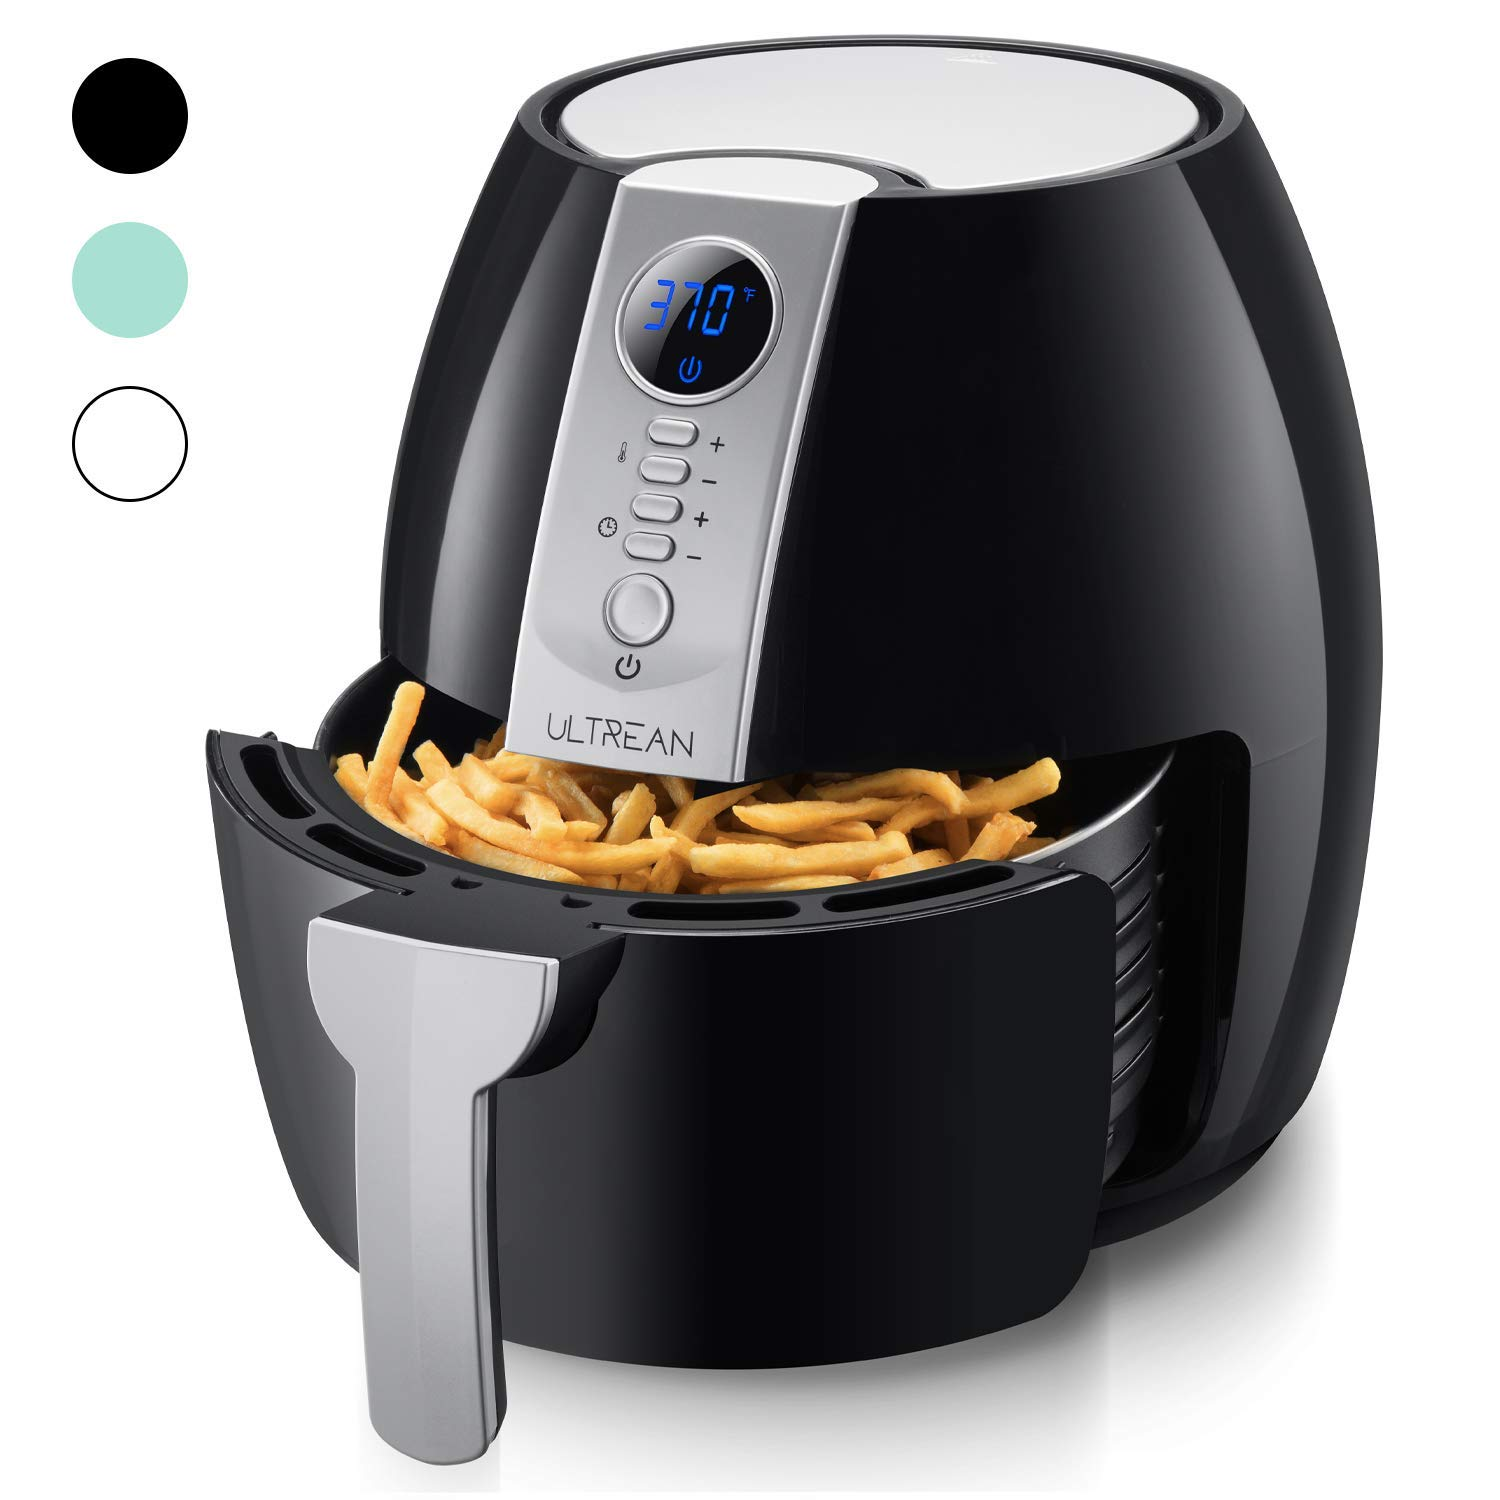 Ultrean Air Fryer, 4.2 Quart (4 Liter) Electric Hot Air Fryers Oven Oilless Cooker with LCD Digital Screen and Nonstick Frying Pot, ETL/UL Certified,1-Year Warranty,1500W (White) (Renewed)